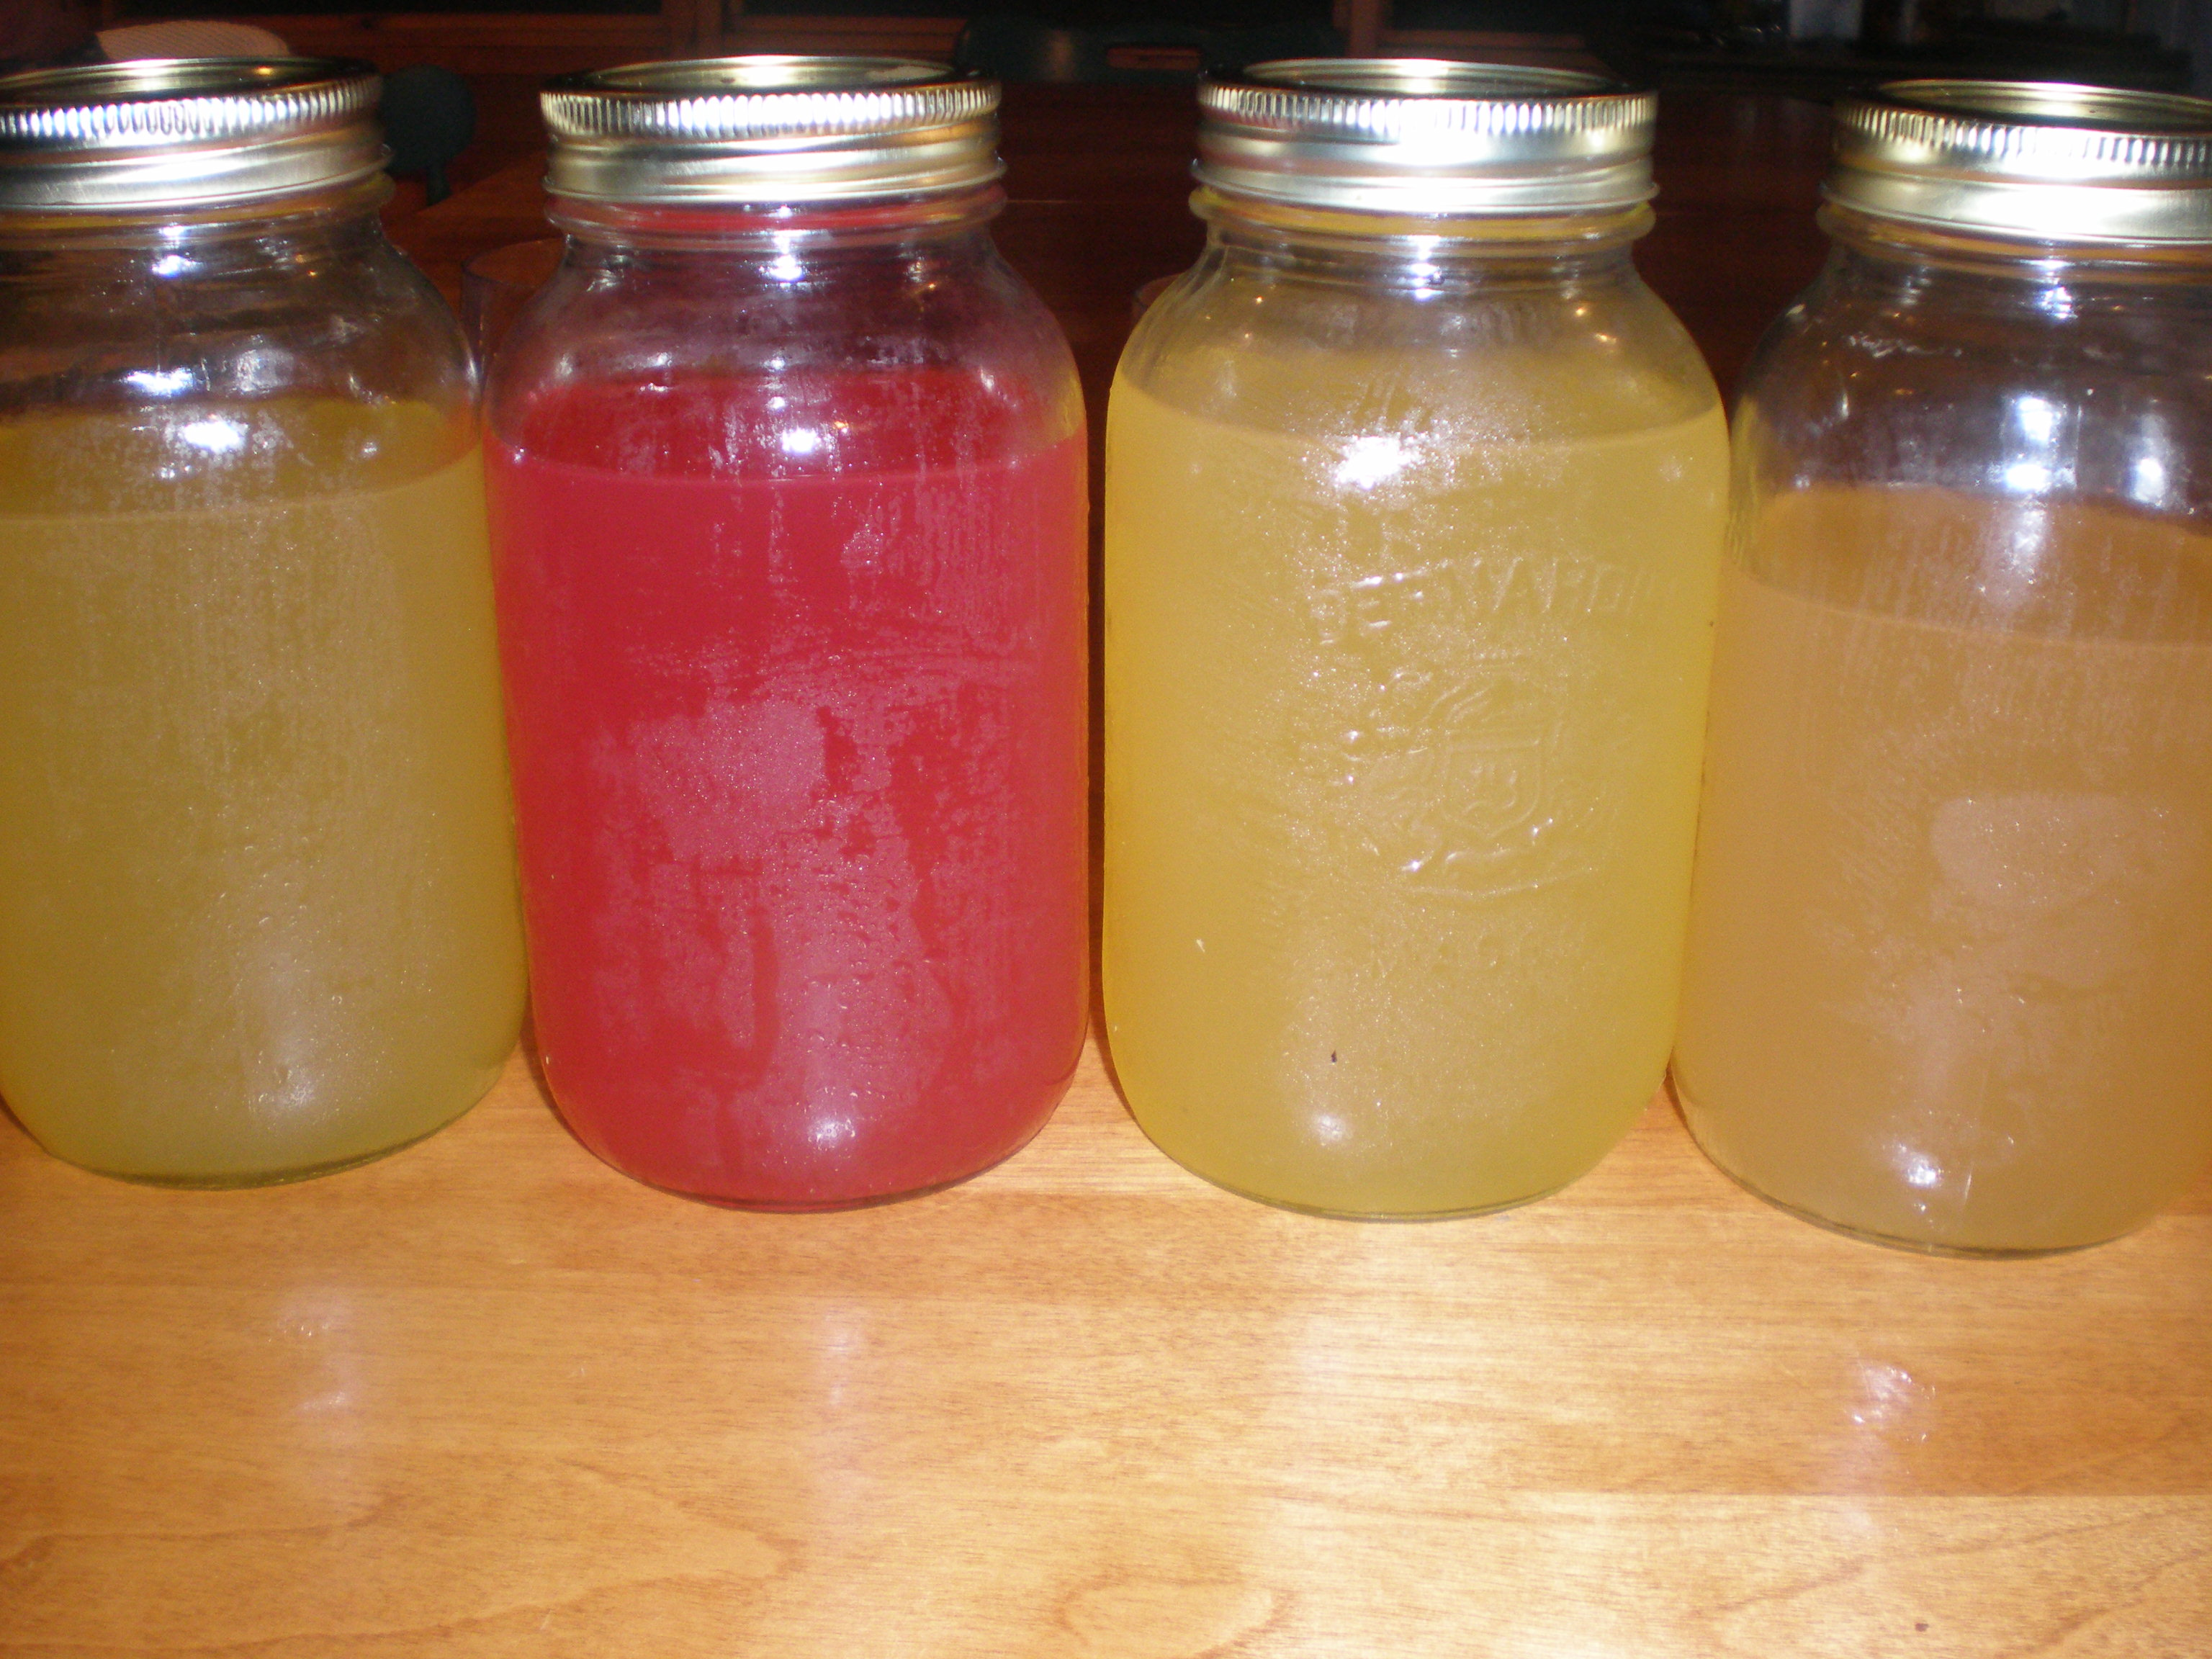 Four Flavours of Mead: plain, blueberry, honey ginger, and peach